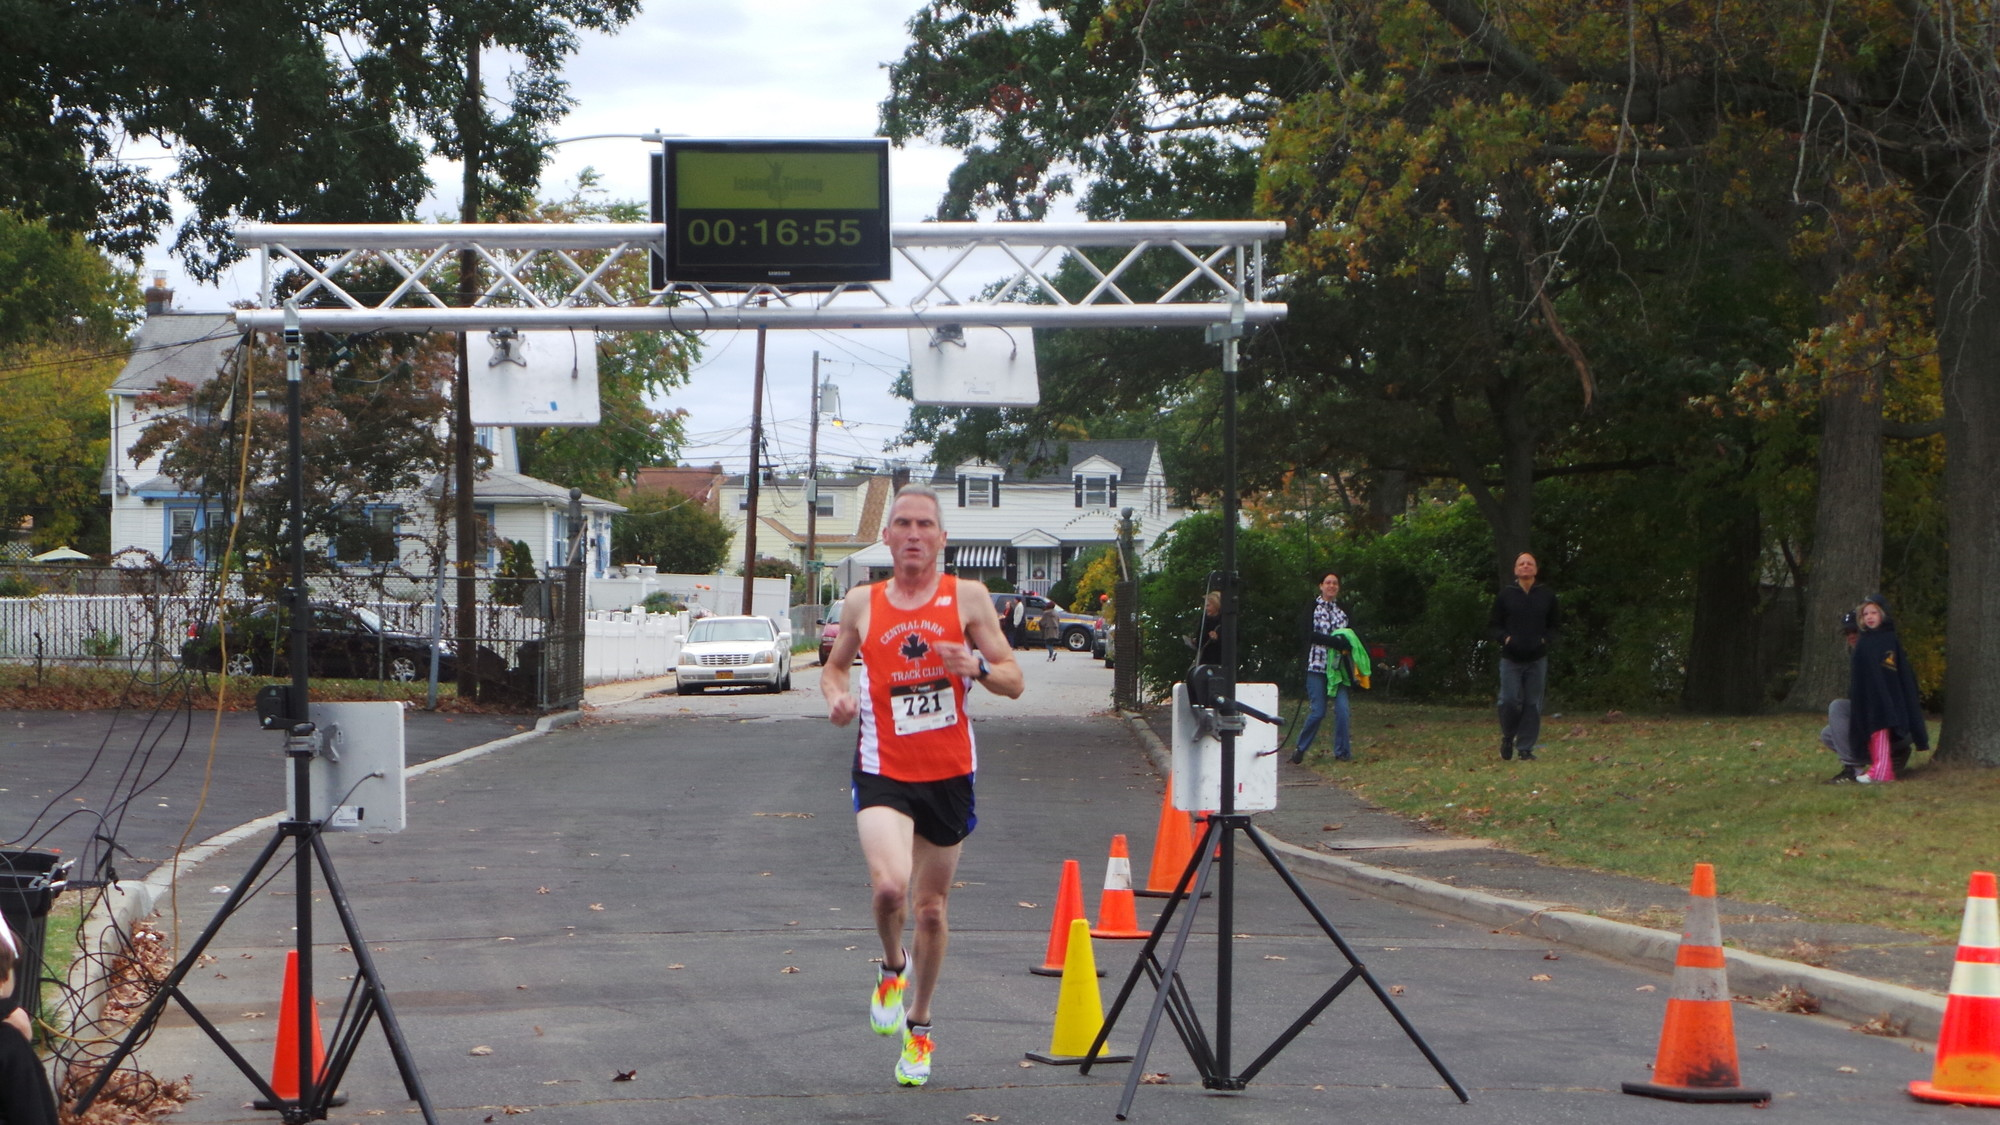 Gerald O'Hara, 50, was the first man to cross the finish line with a time of 16 minutes and 57 seconds.